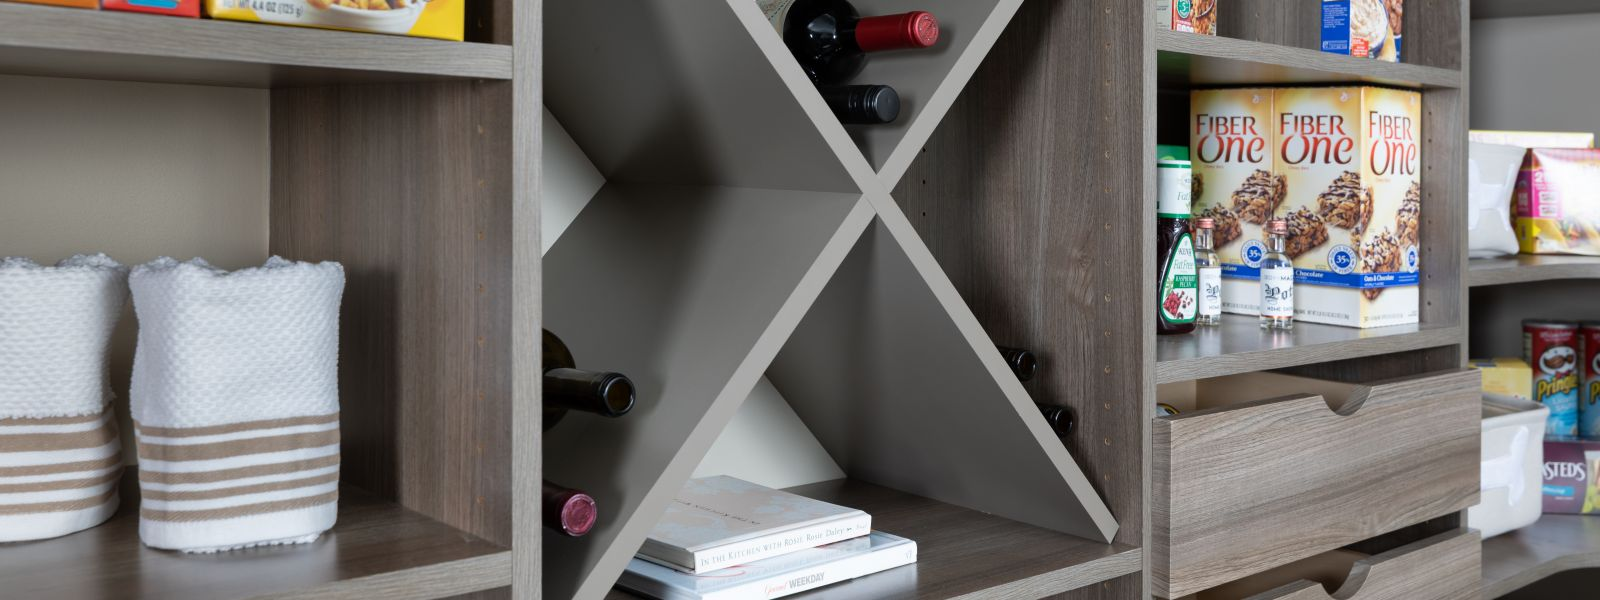 a pantry with wine racks and baskets